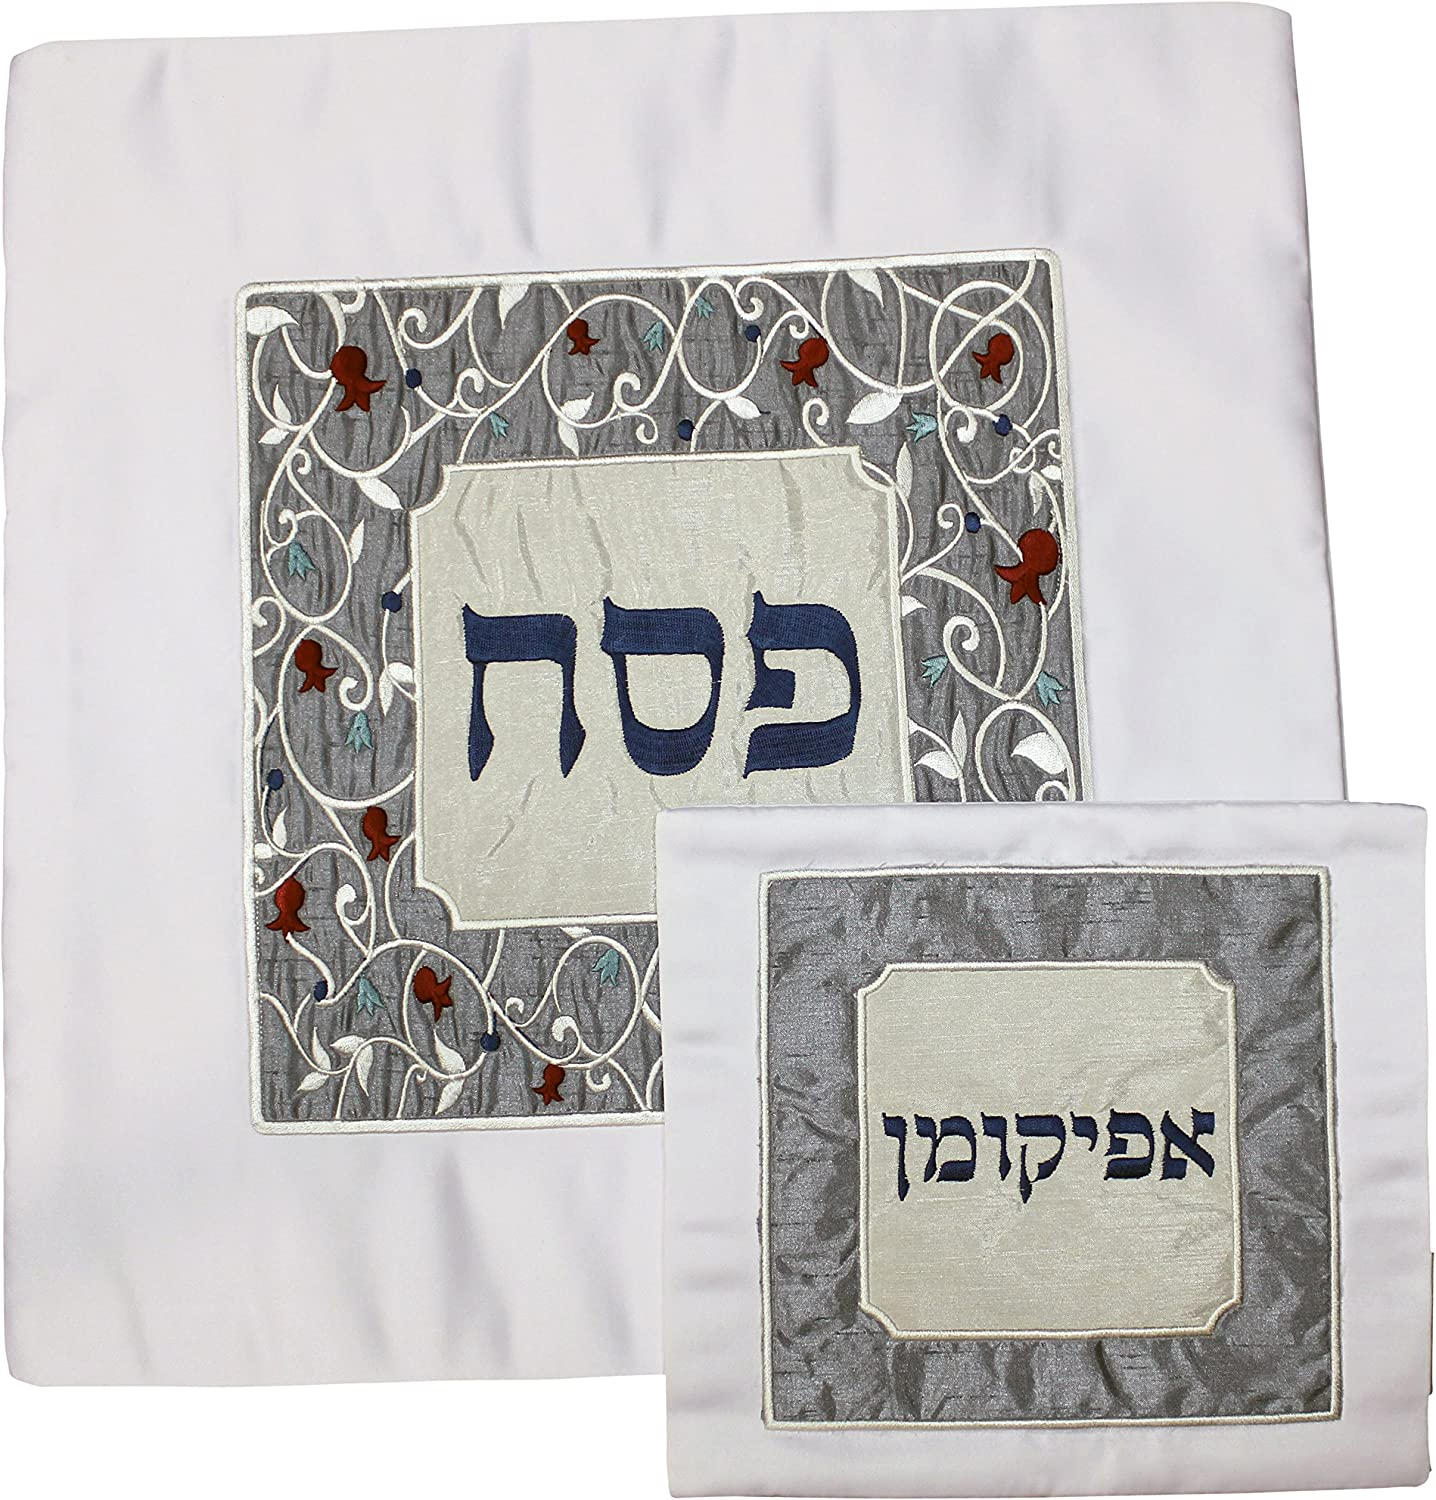 14 by 14-Inch//8 by 8-Inch Majestic Giftware RGPS9 Passover Polyester Matzah Cover Set with Afikomen Bag